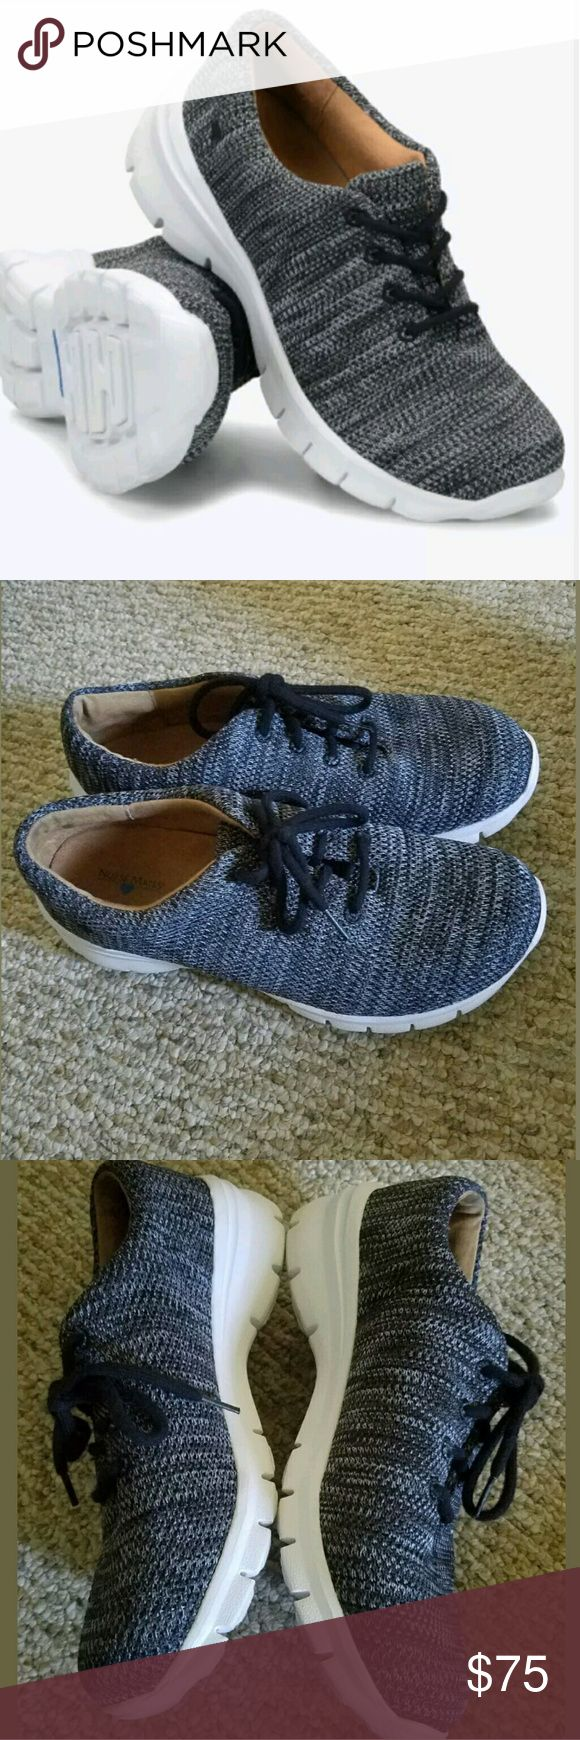 Nurse Mates Lacey 259509 Gray Knit Lace Sneakers 9M      Excellent used condition.   Stain-resistant woven fabric upperRemovable insoleLightweight EVA bottomSlip-ResistantHeel height: 1.5 inches   True to size / True to Width   LB Nurse Mates Shoes Sneakers